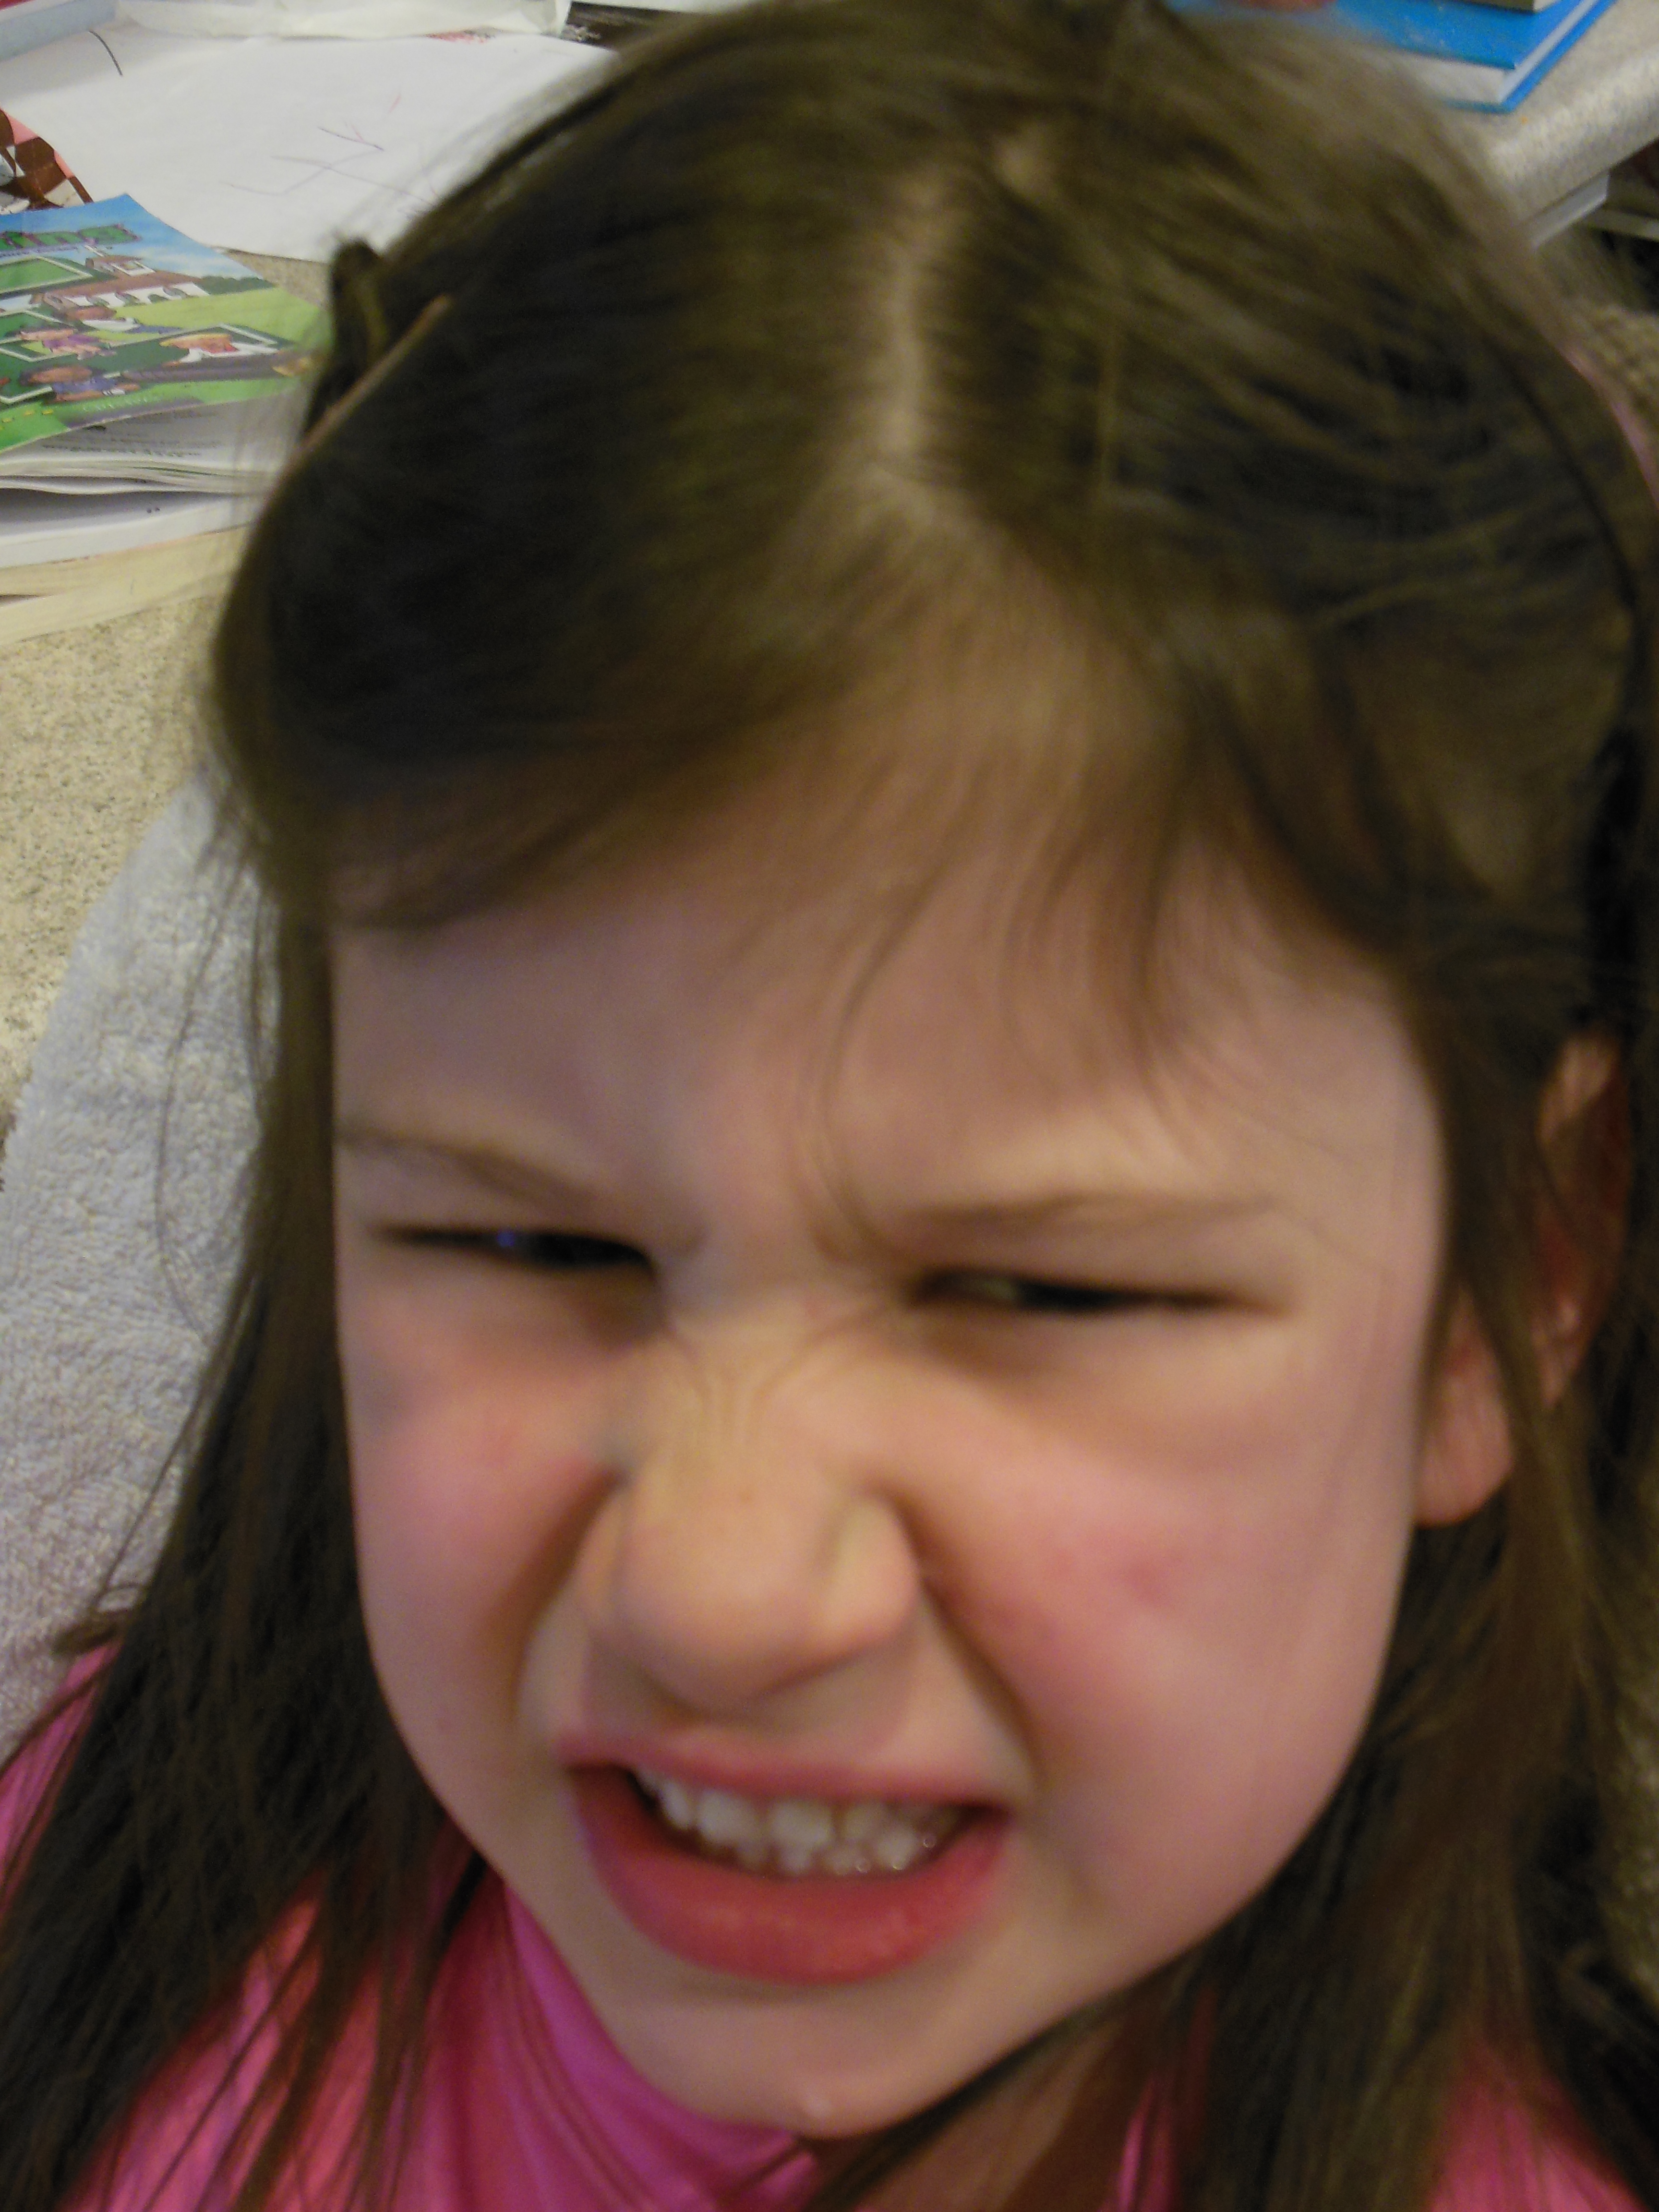 The child hurts the ear strongly shoots what to do. child 3 year